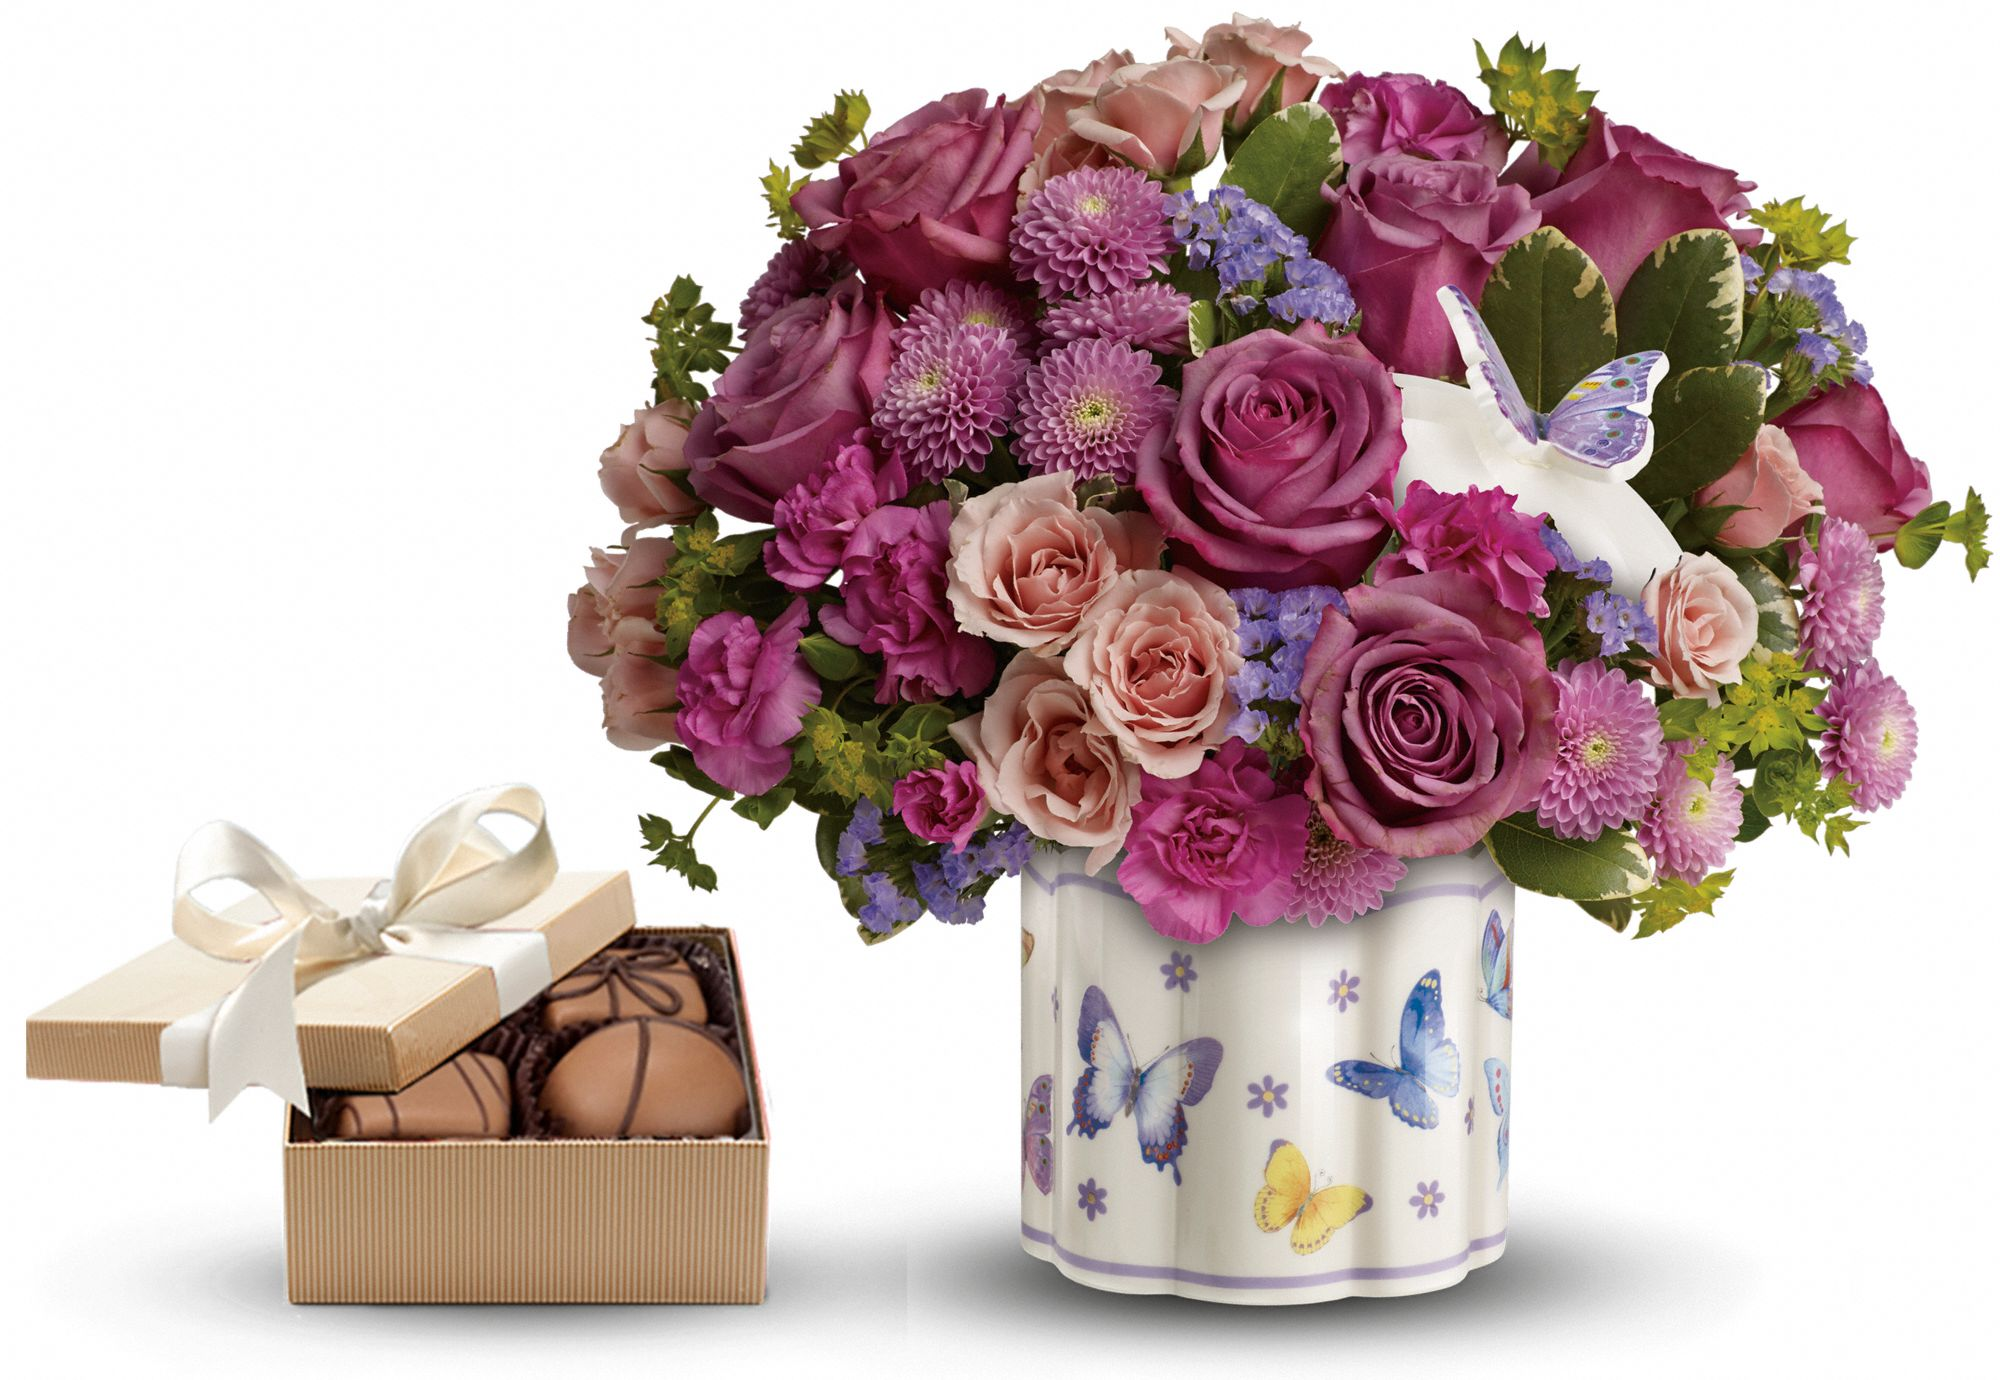 flowers in a ceramic jewelry box and chocolates